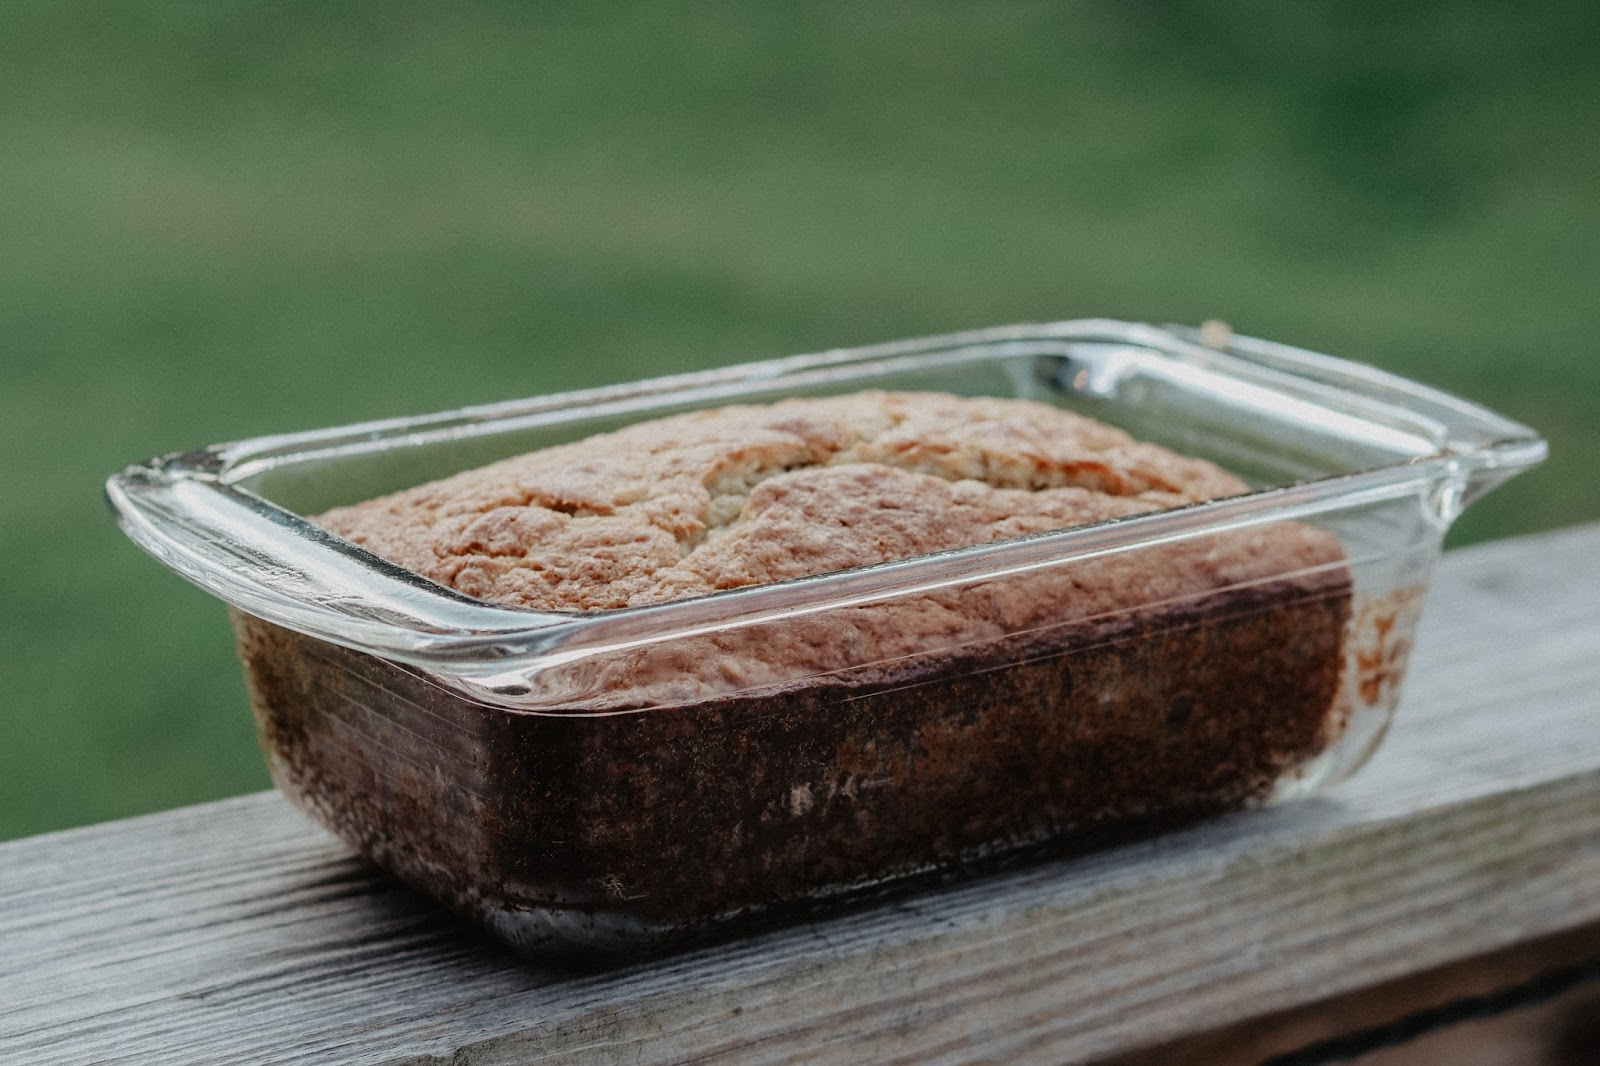 So today I thought I would share with you all something very dear to my heart--and my taste buds: my mom's homemade banana bread. This recipe is by far the ...